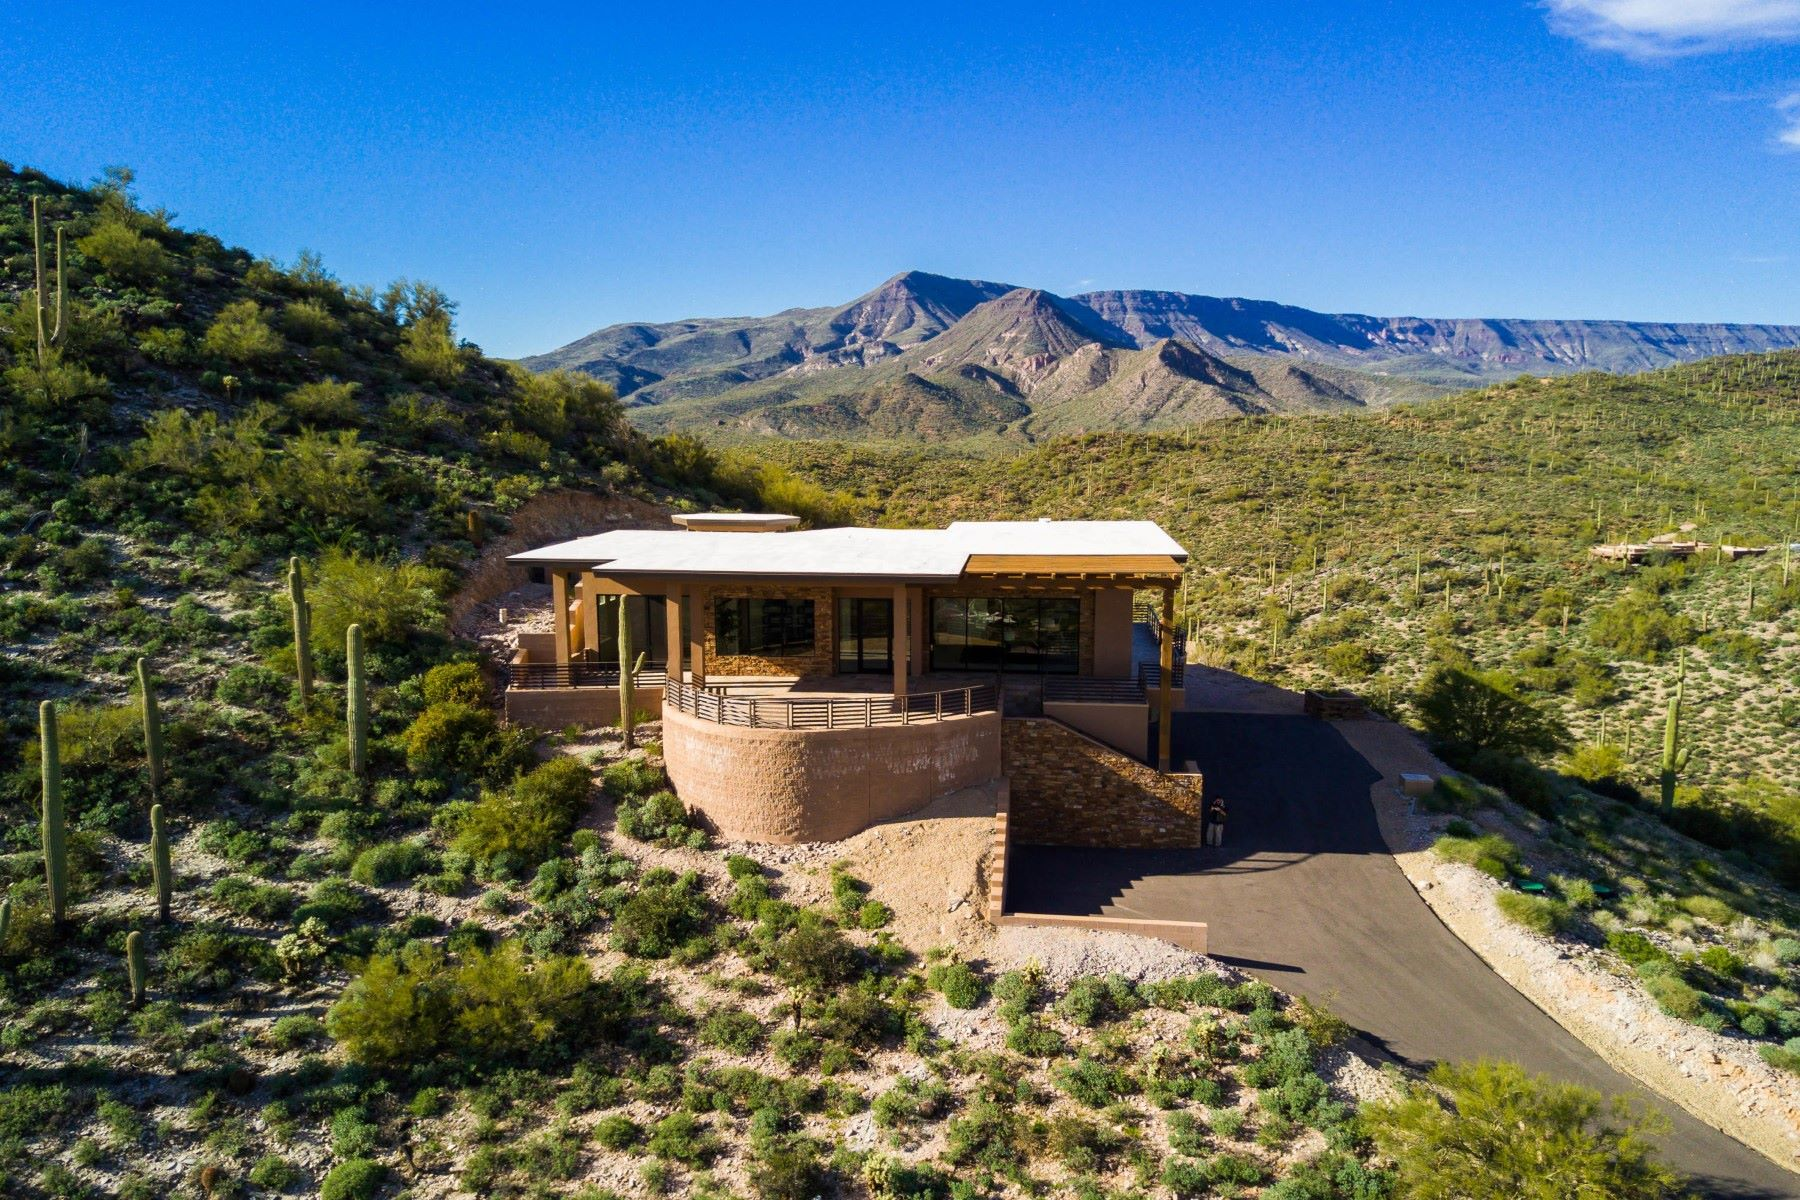 Single Family Home for Sale at Stunning Mountaintop Estate 43716 N 65th St, Cave Creek, Arizona, 85331 United States